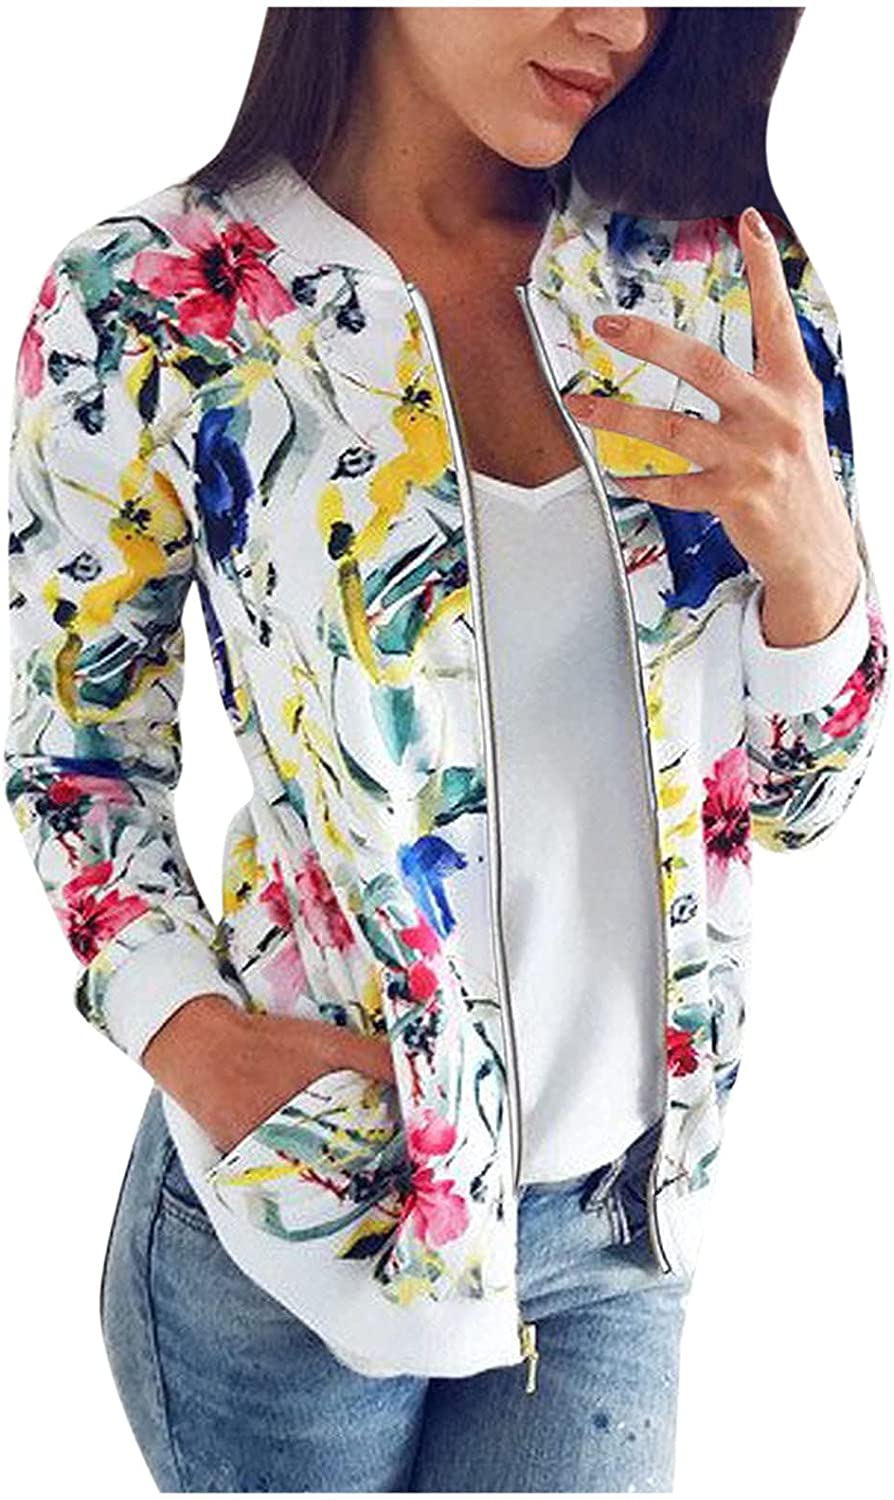 2021 Autumn and winter Women's Ladies Retro Floral Printing Zipper Up Jacket Casual Tops Coat Outwear